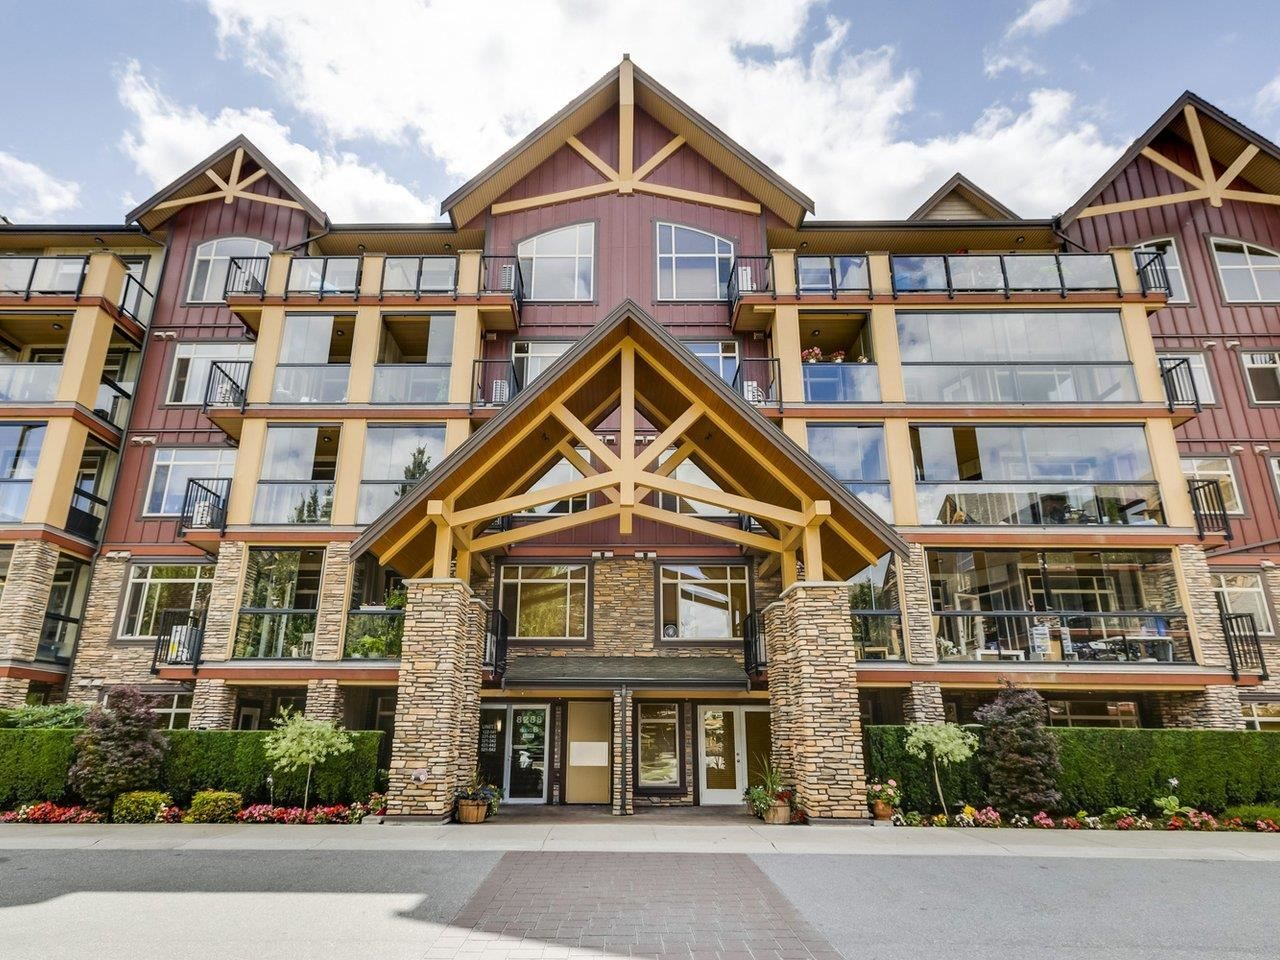 """Main Photo: 128 8288 207A Street in Langley: Willoughby Heights Condo for sale in """"YORKSON CREEK"""" : MLS®# R2603173"""